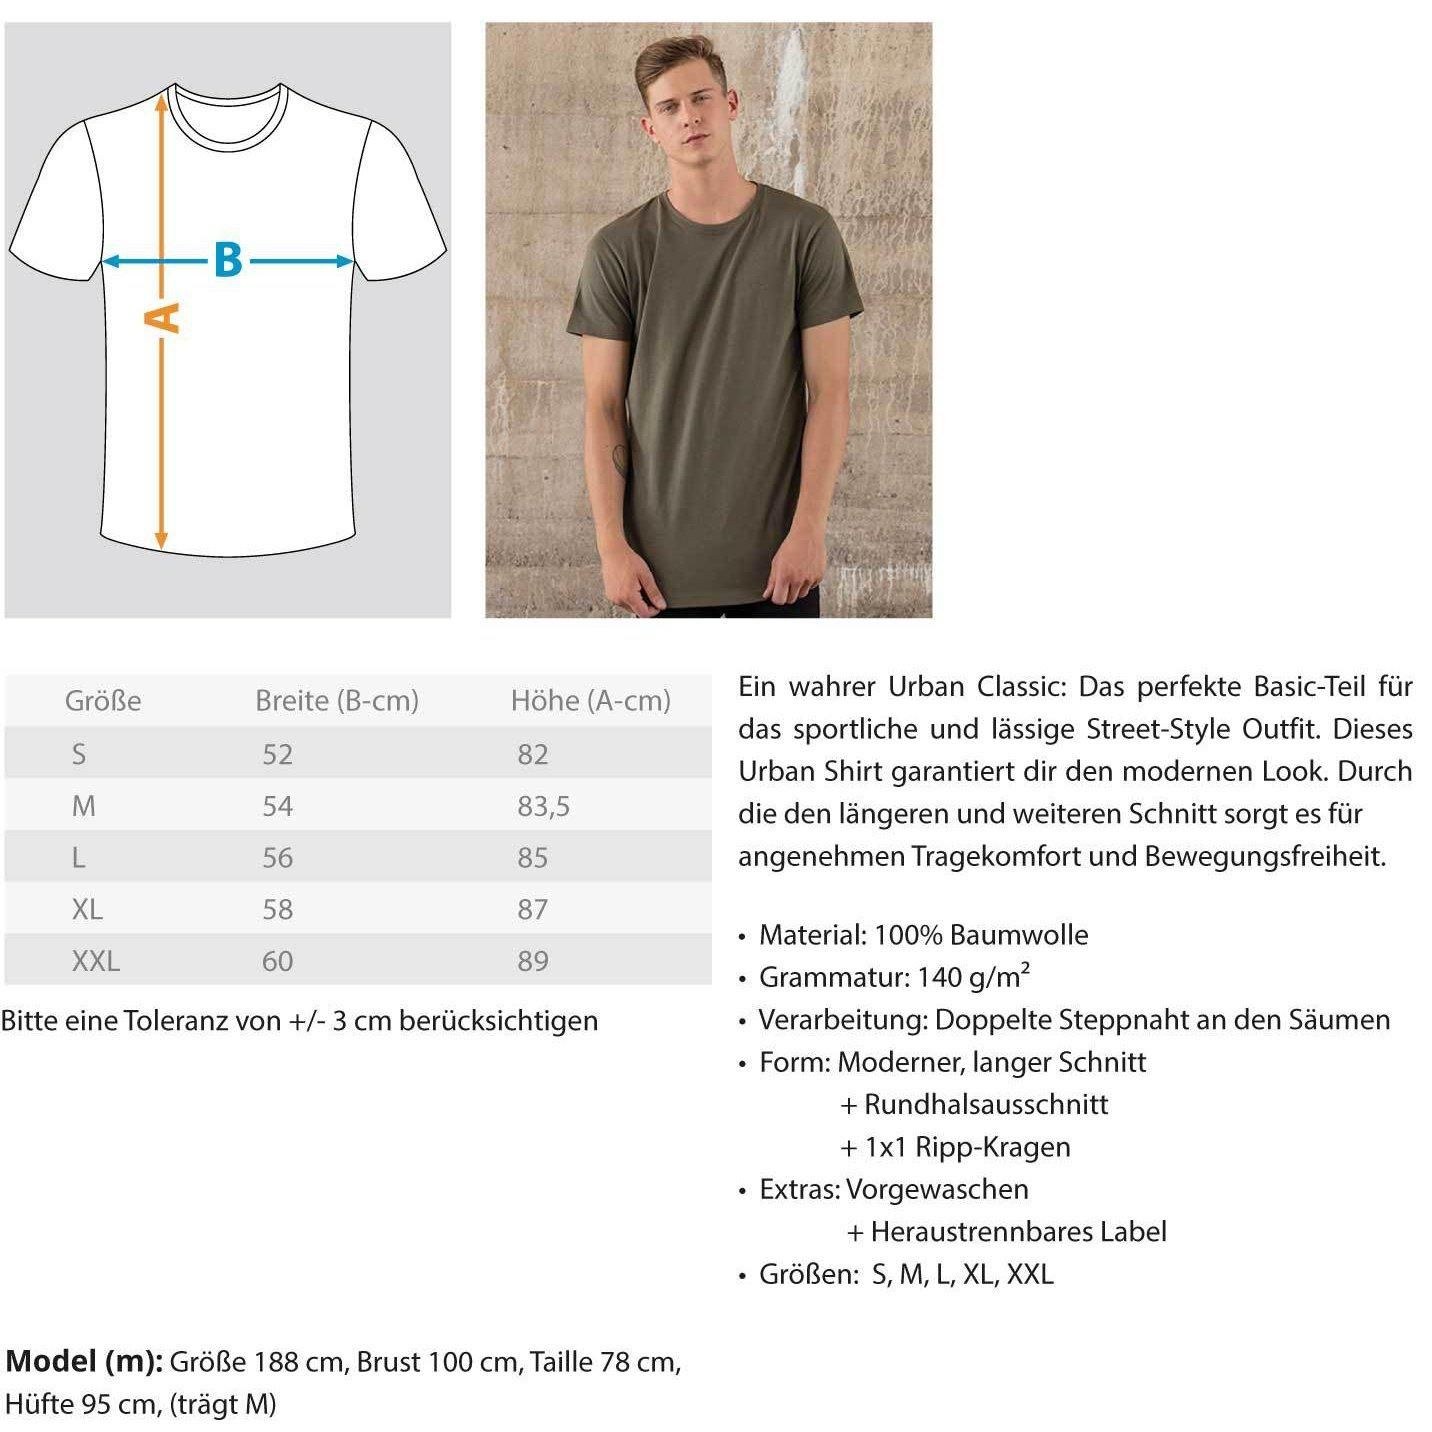 Rave On!® White Graffity - Herren Long Tee Men Long Tee - Rave On!® der Club & Techno Szene Shop für Coole Junge Mode Streetwear Style & Fashion Outfits + Sexy Festival 420 Stuff